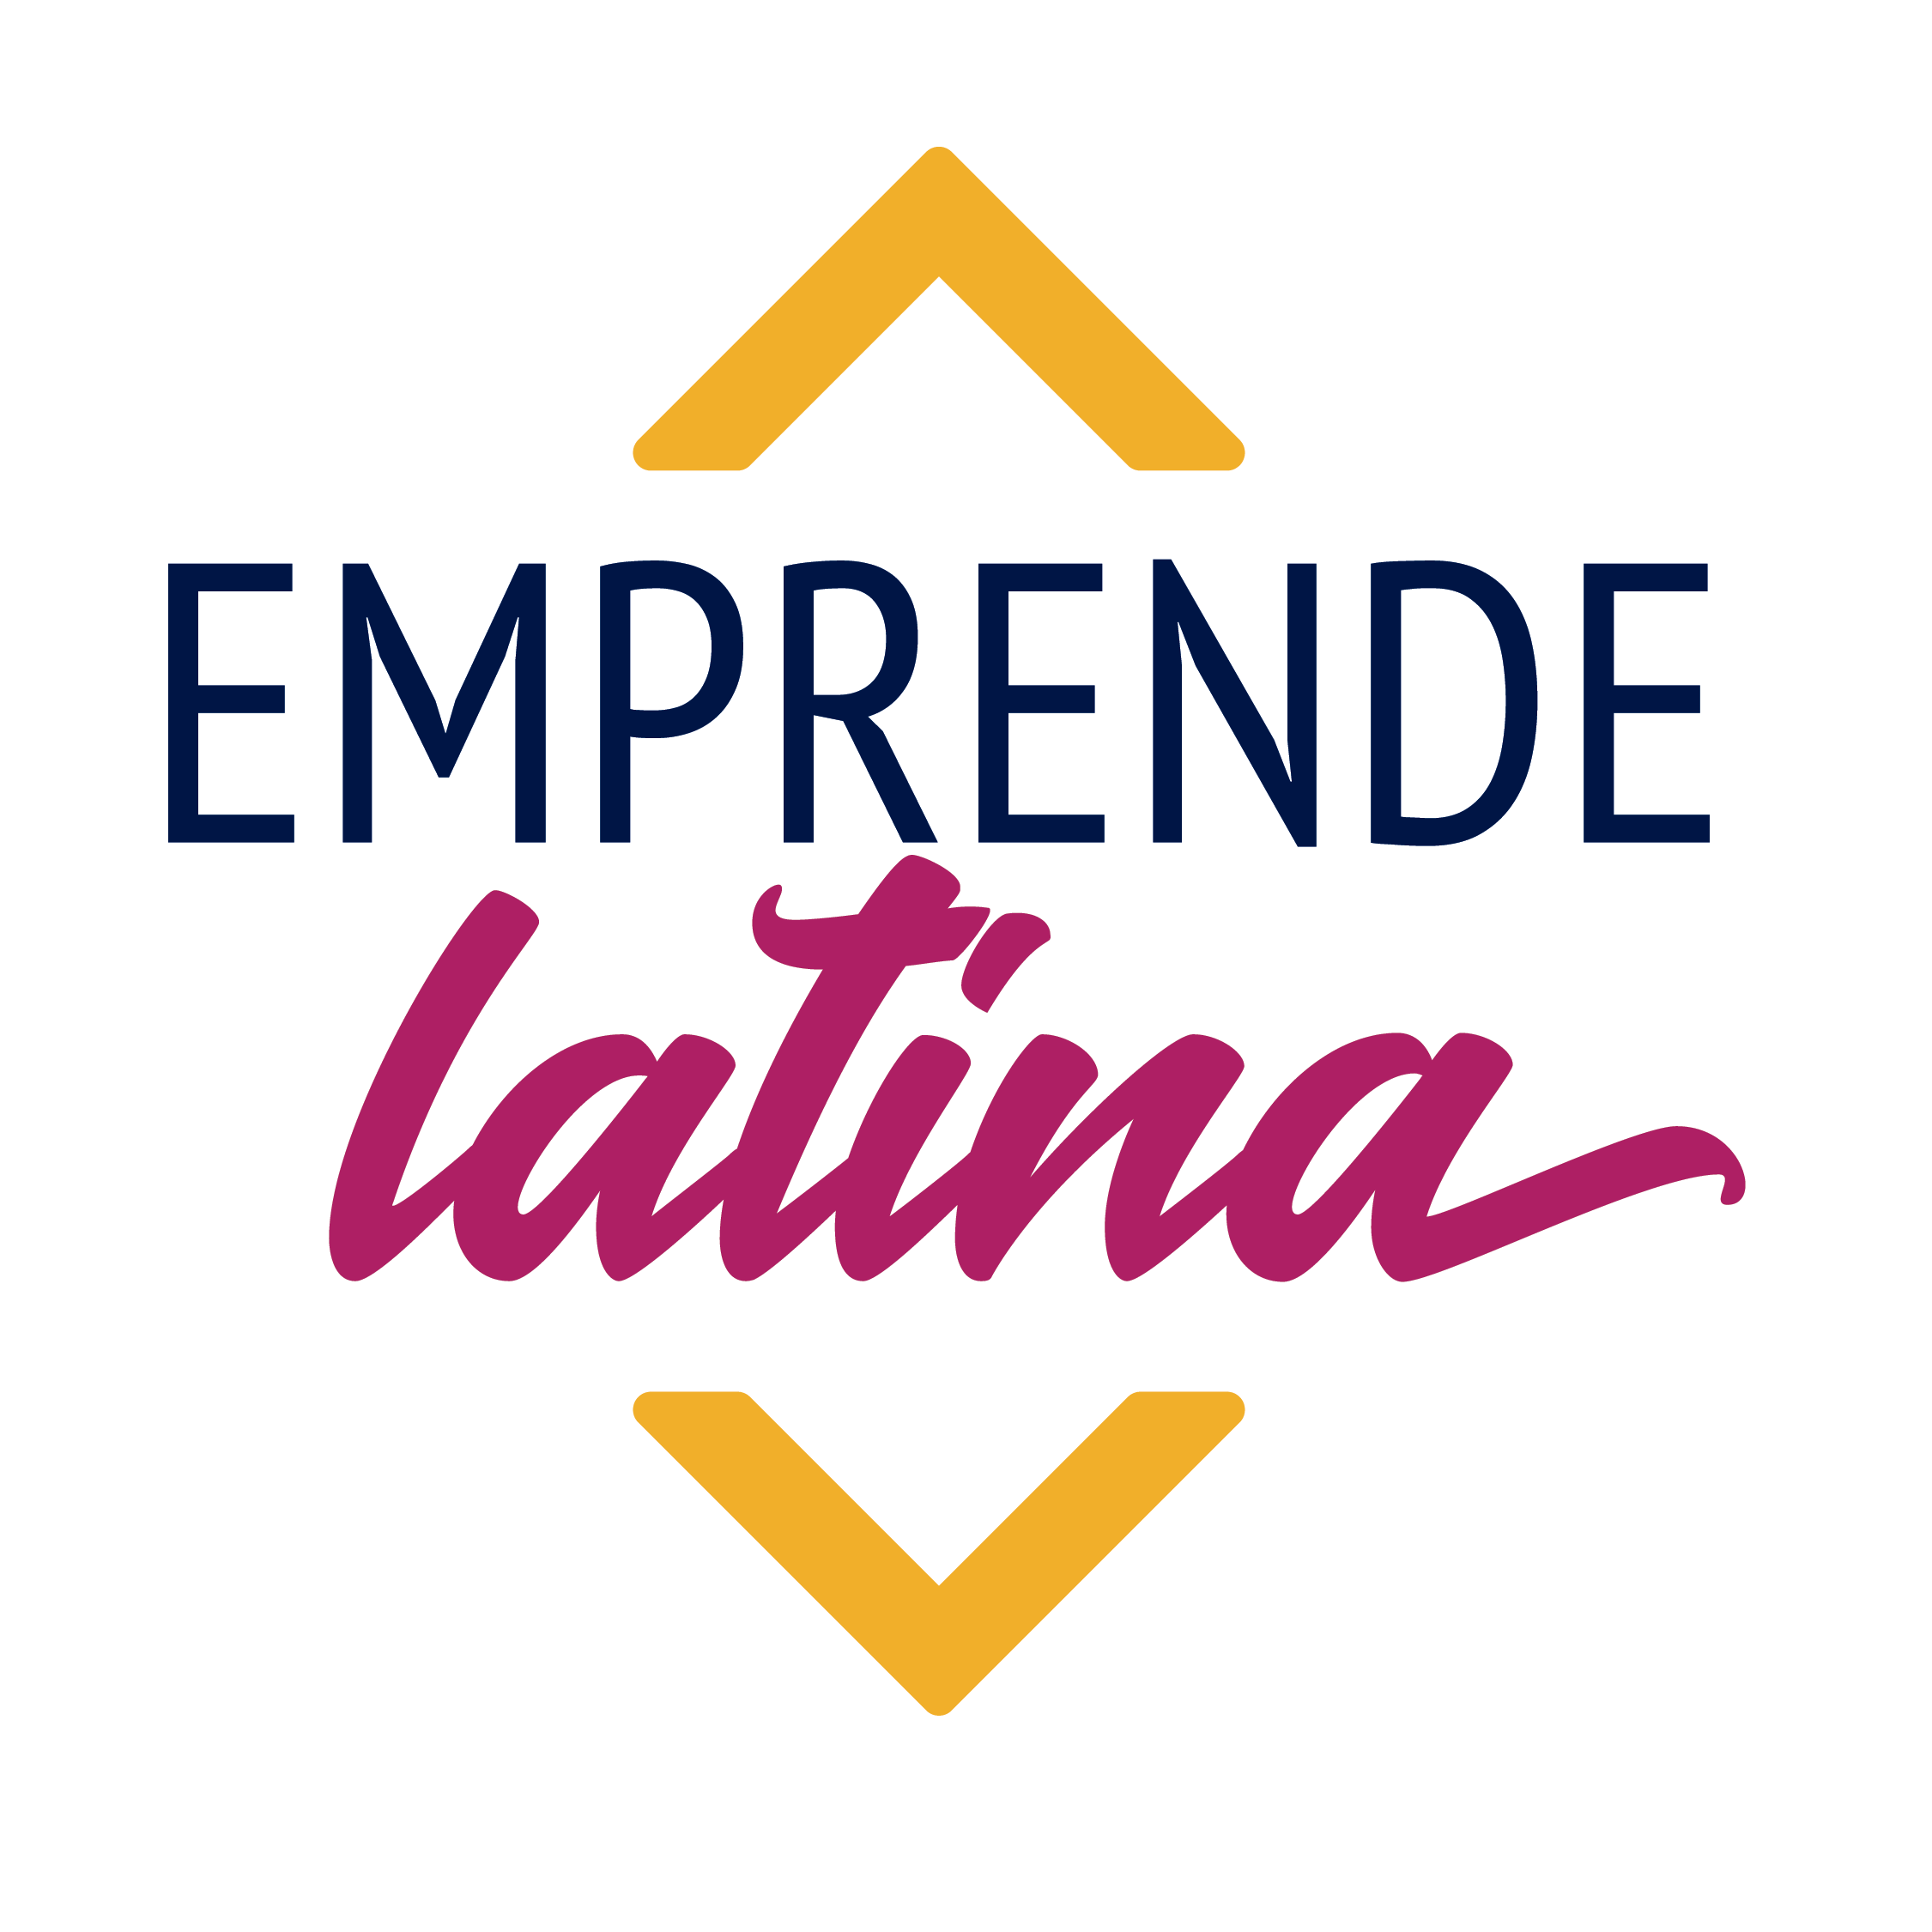 EMPRENDE LATINA LOGO COLORES final sin fondo